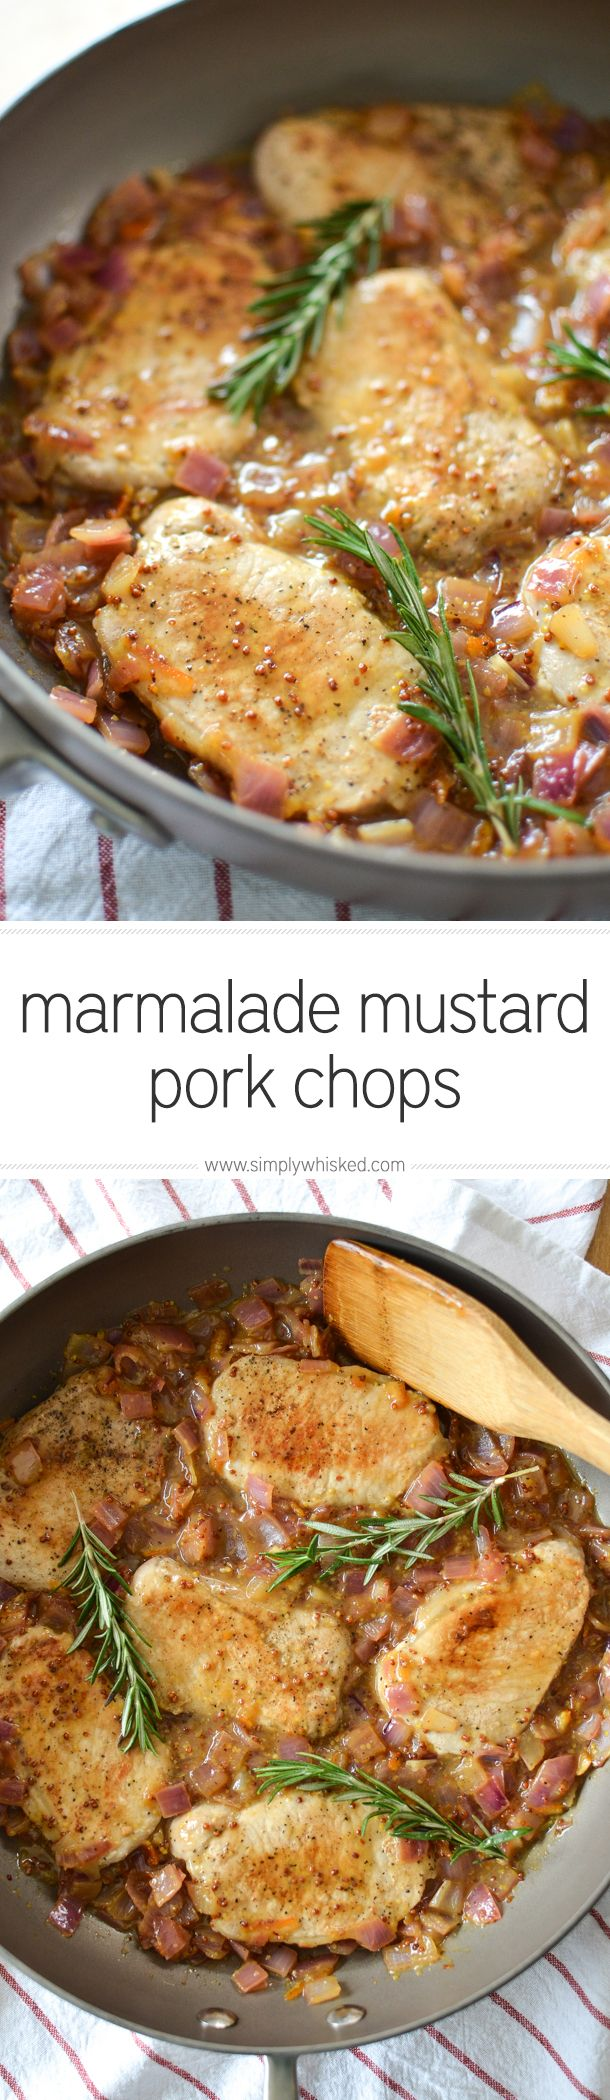 Marmalade Mustard Pork Chops with Rosemary | pork chop recipe | easy dinner recipe | simplywhisked.com